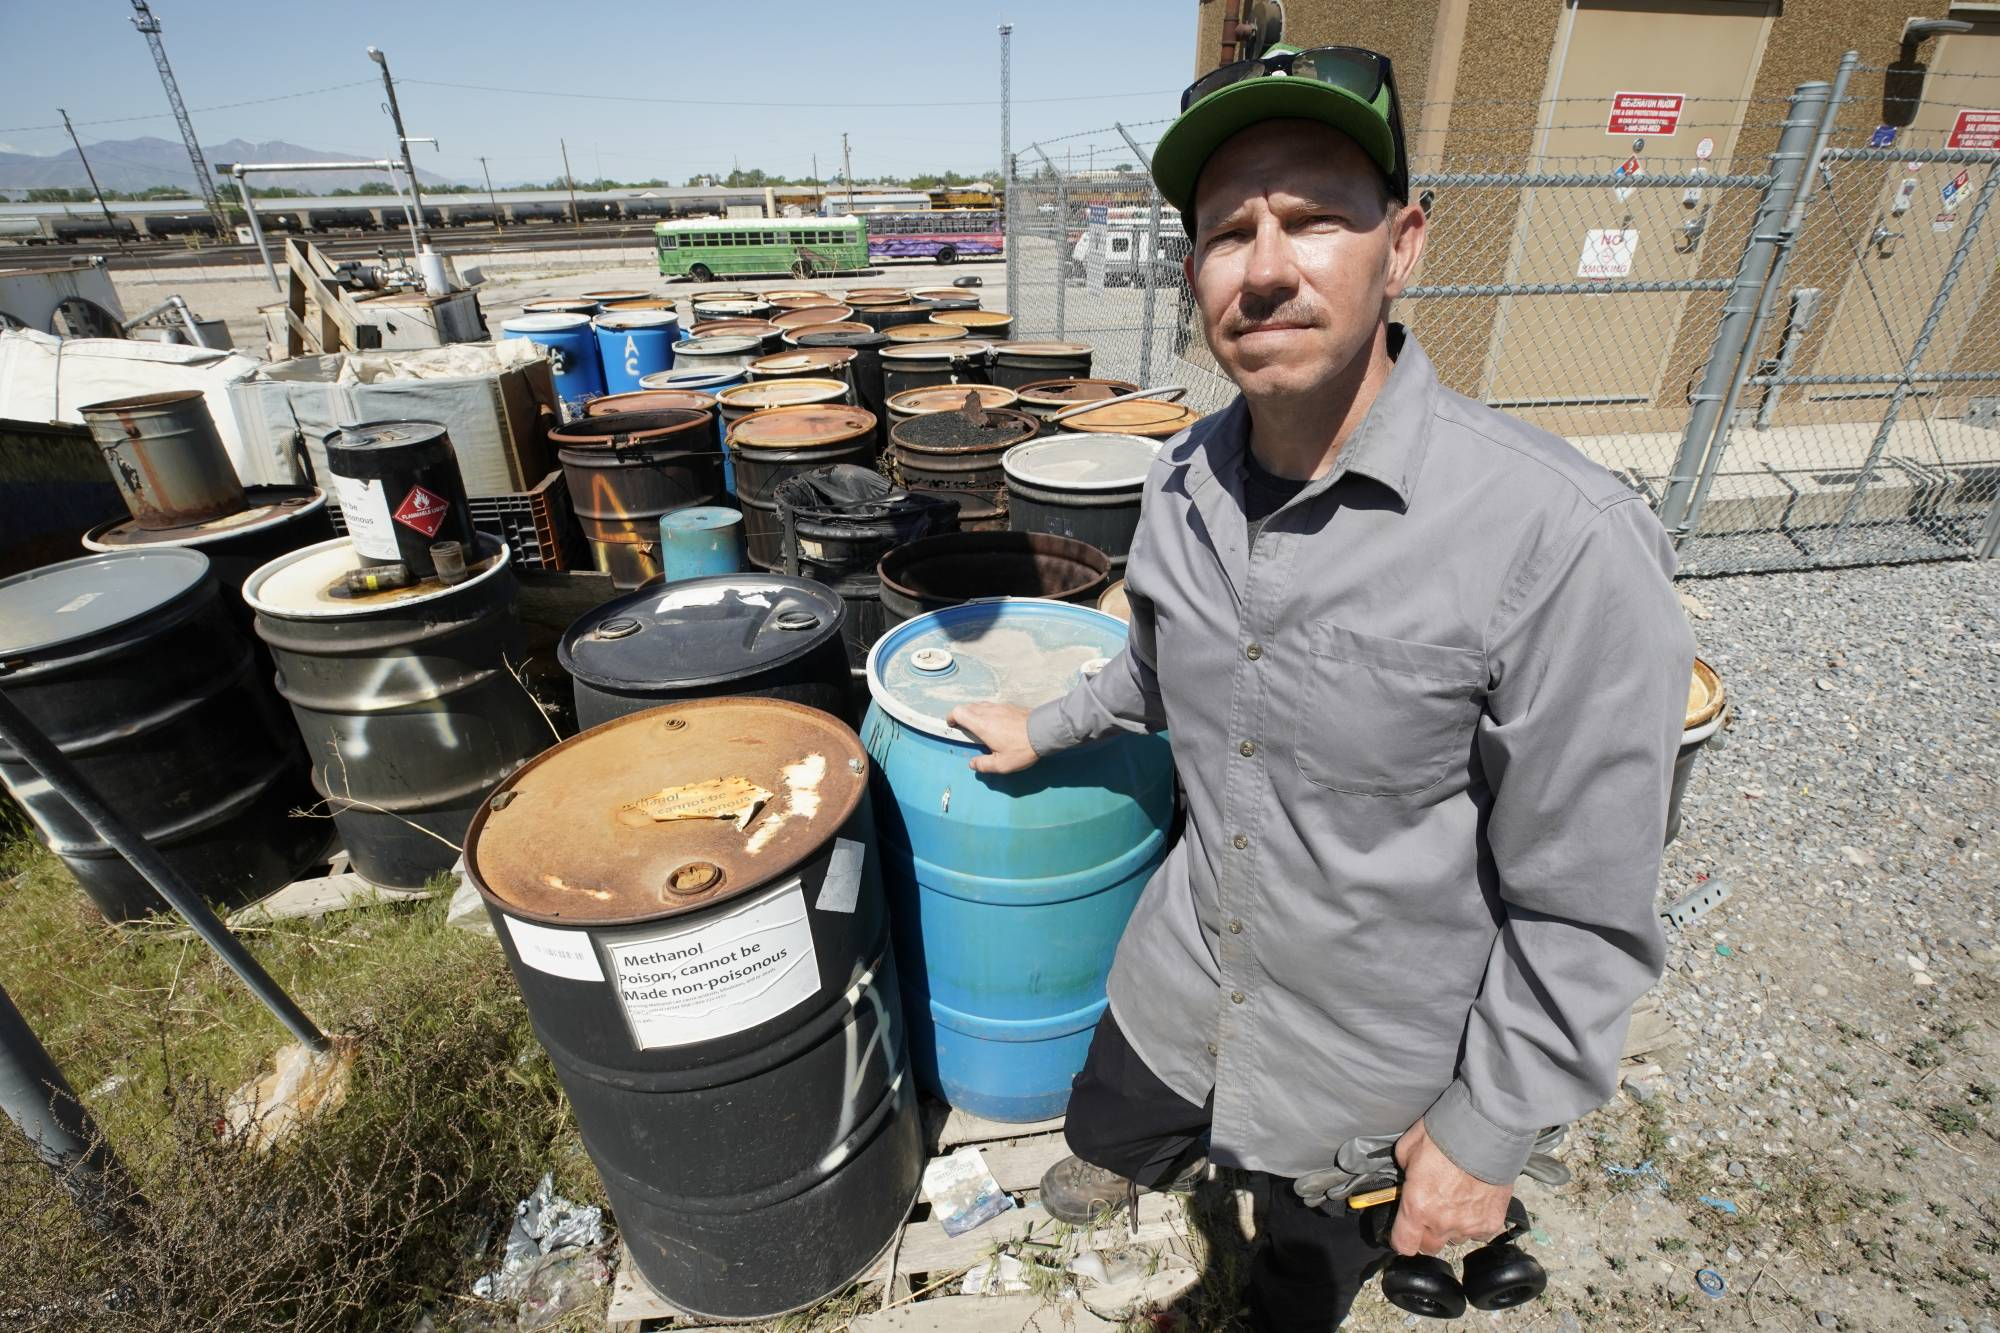 Jeremiah Bates complained to the the local fire marshal about the detritus piling up at recycling firm Renewlogy Technologies, next to his tire shop in Salt Lake City, Utah.   REUTERS